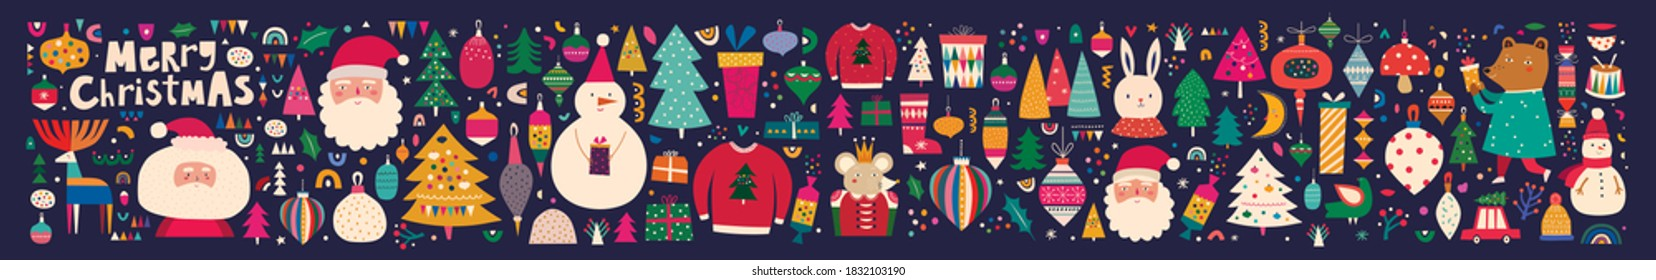 Big Christmas collection with traditional Christmas symbols and decorative elements. Christmas holiday pattern